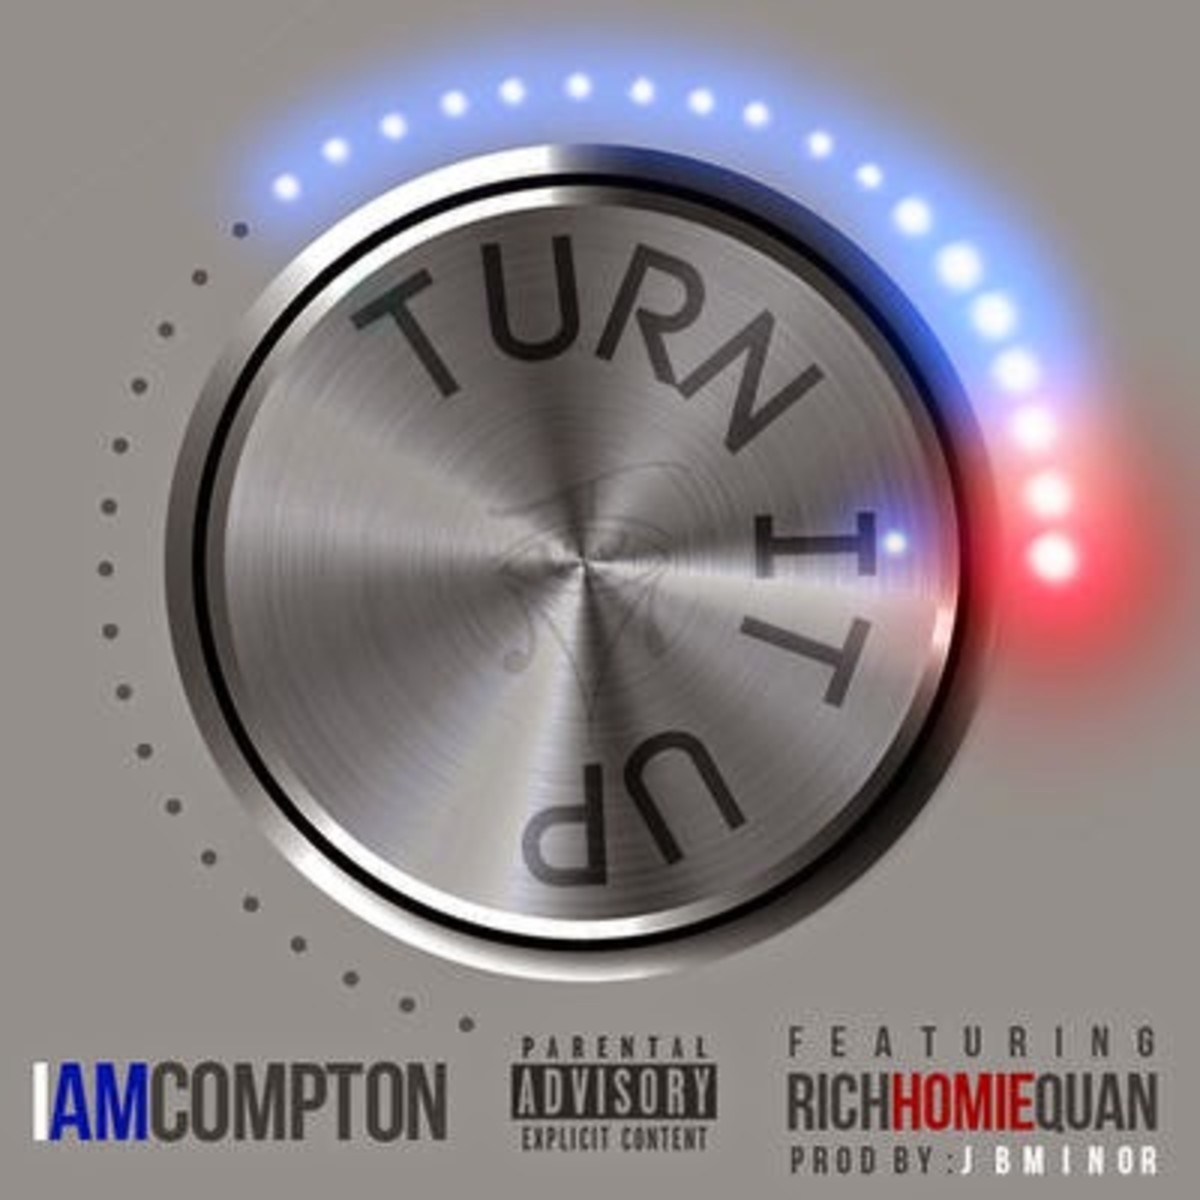 iamcompton-turn-it-up.jpg